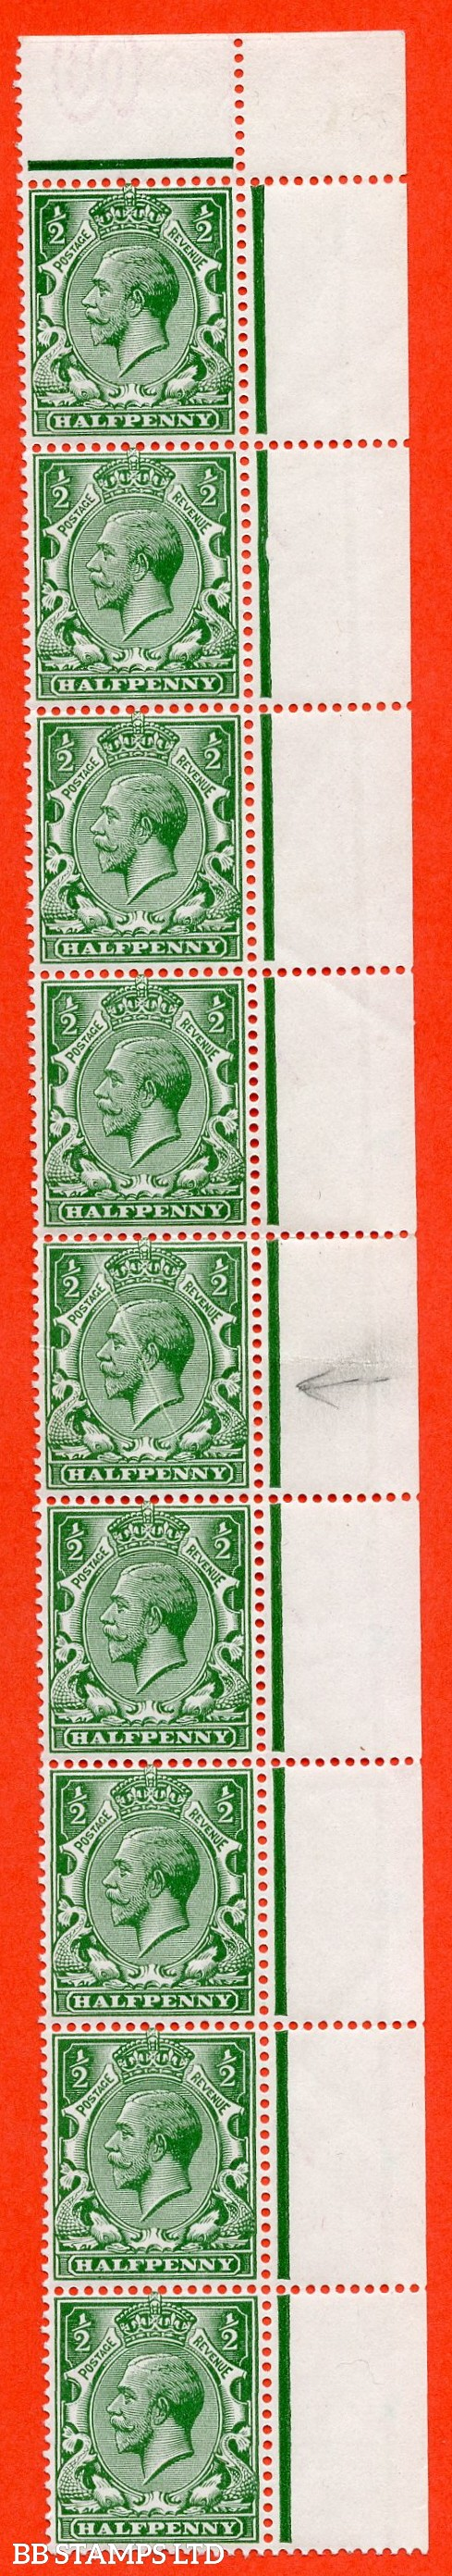 "SG. 356. N14 (14) b. ½d blue green. "" NO WATERMARK. A superb UNMOUNTED MINT right hand marginal vertical strip of 9. 6 stamps with no watermark with RPS certificate. Stamp 5 with nice pre - printing paper fold error."